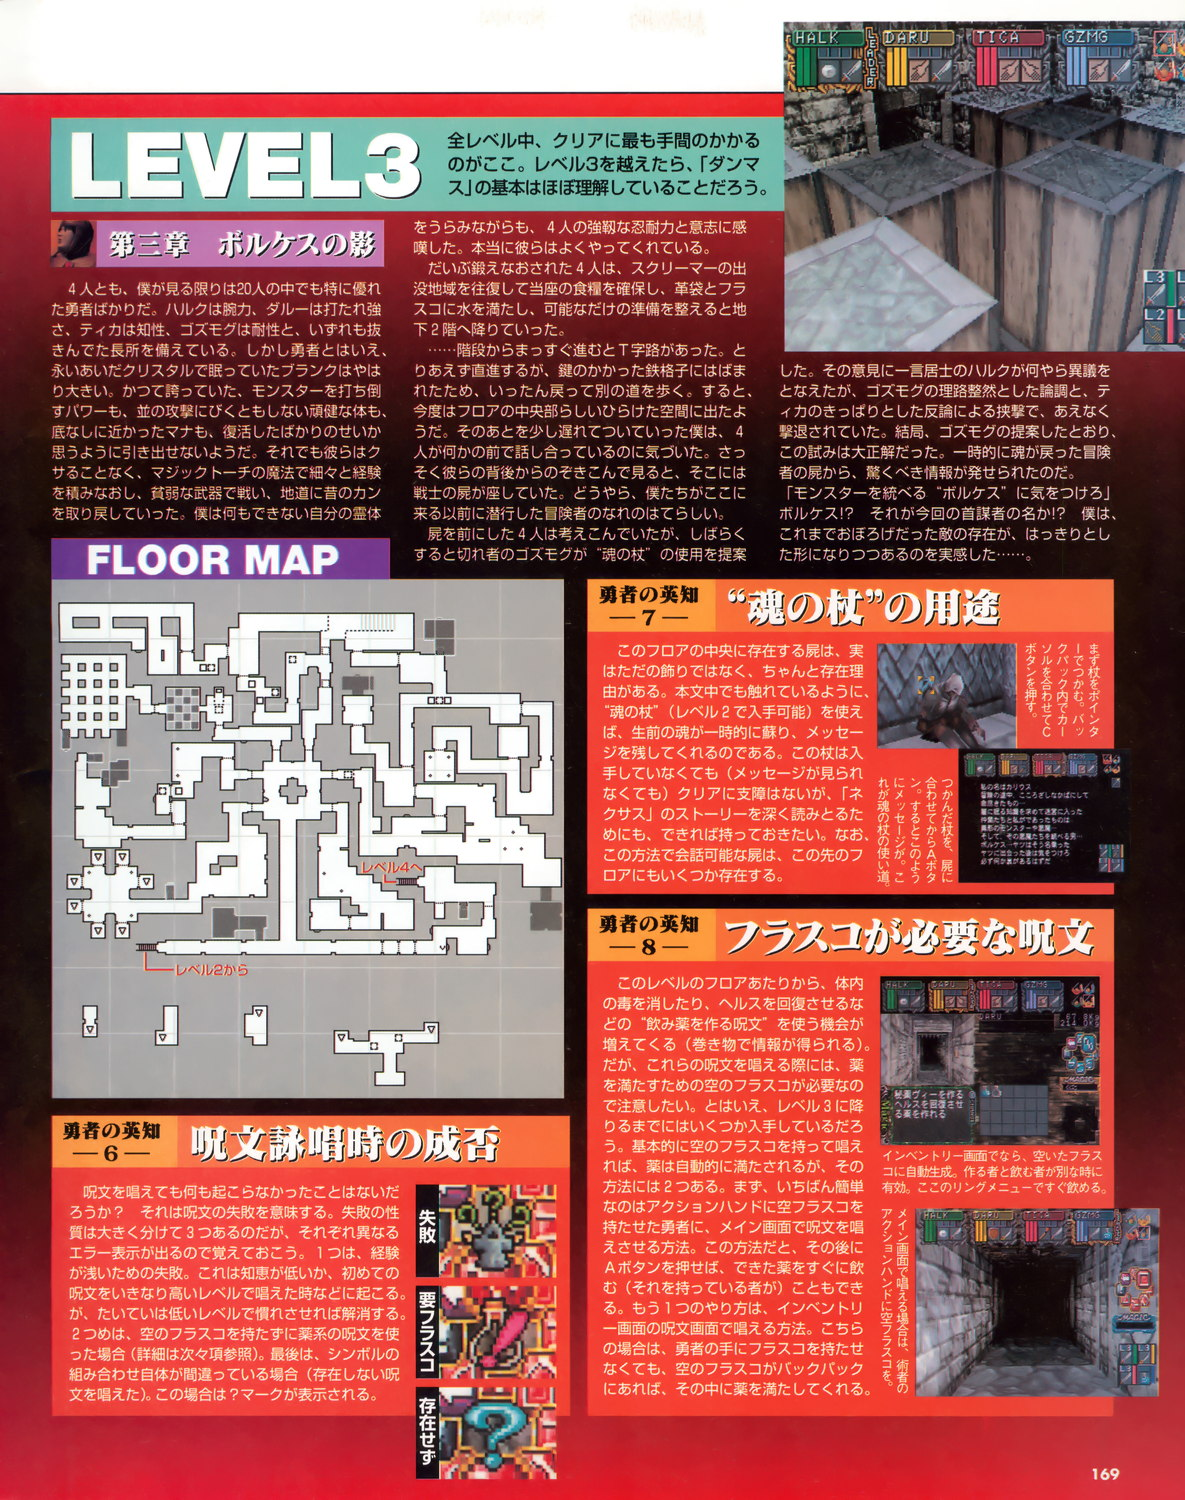 Dungeon Master Nexus Guide published in Japanese magazine 'Sega Saturn Magazine', Vol 11 10 April 1998, Page 169